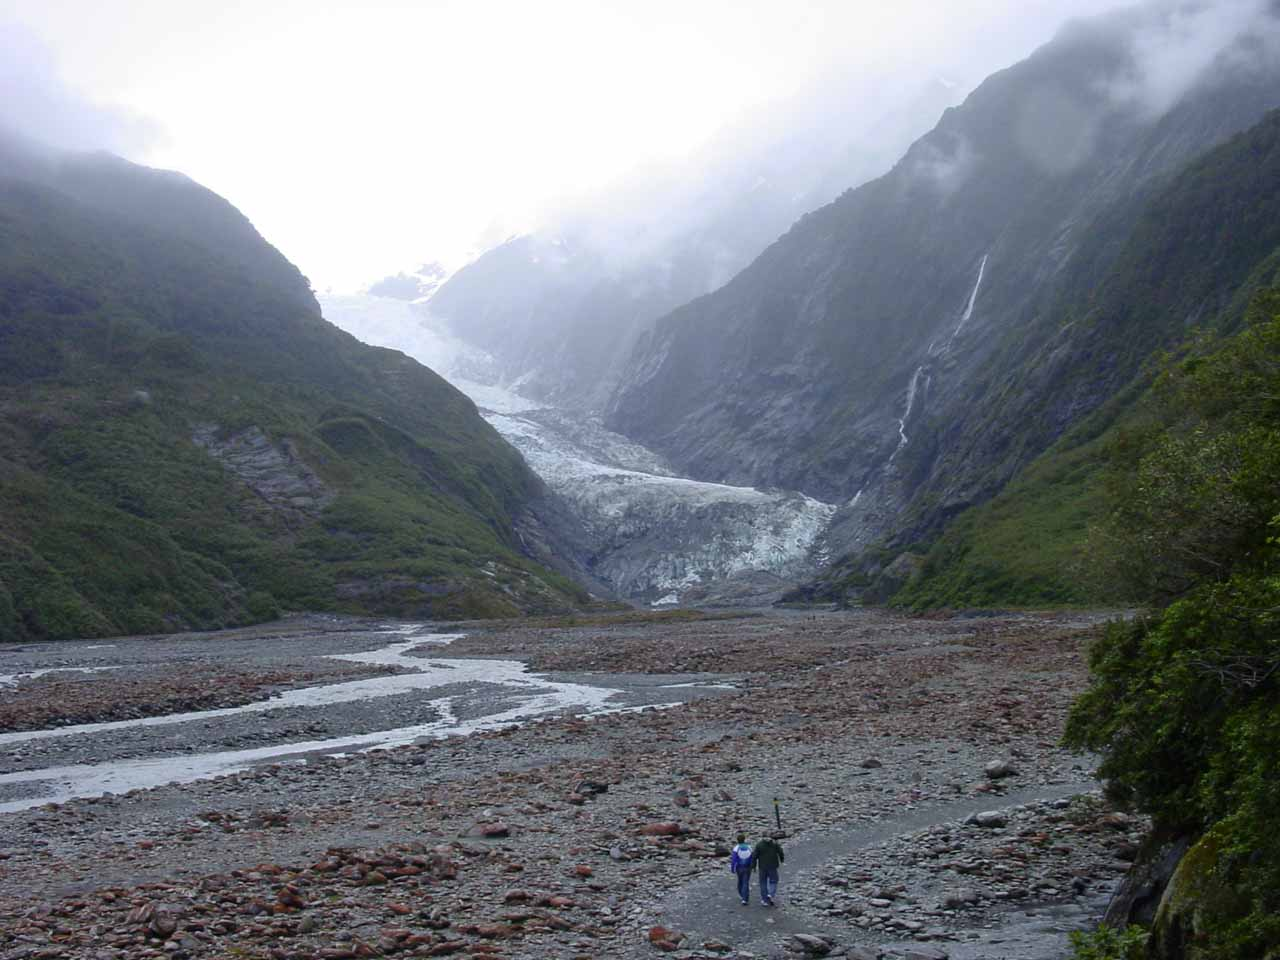 This was the view as we were descending into the glacier valley left behind by the scouring action of the Franz Josef Glacier